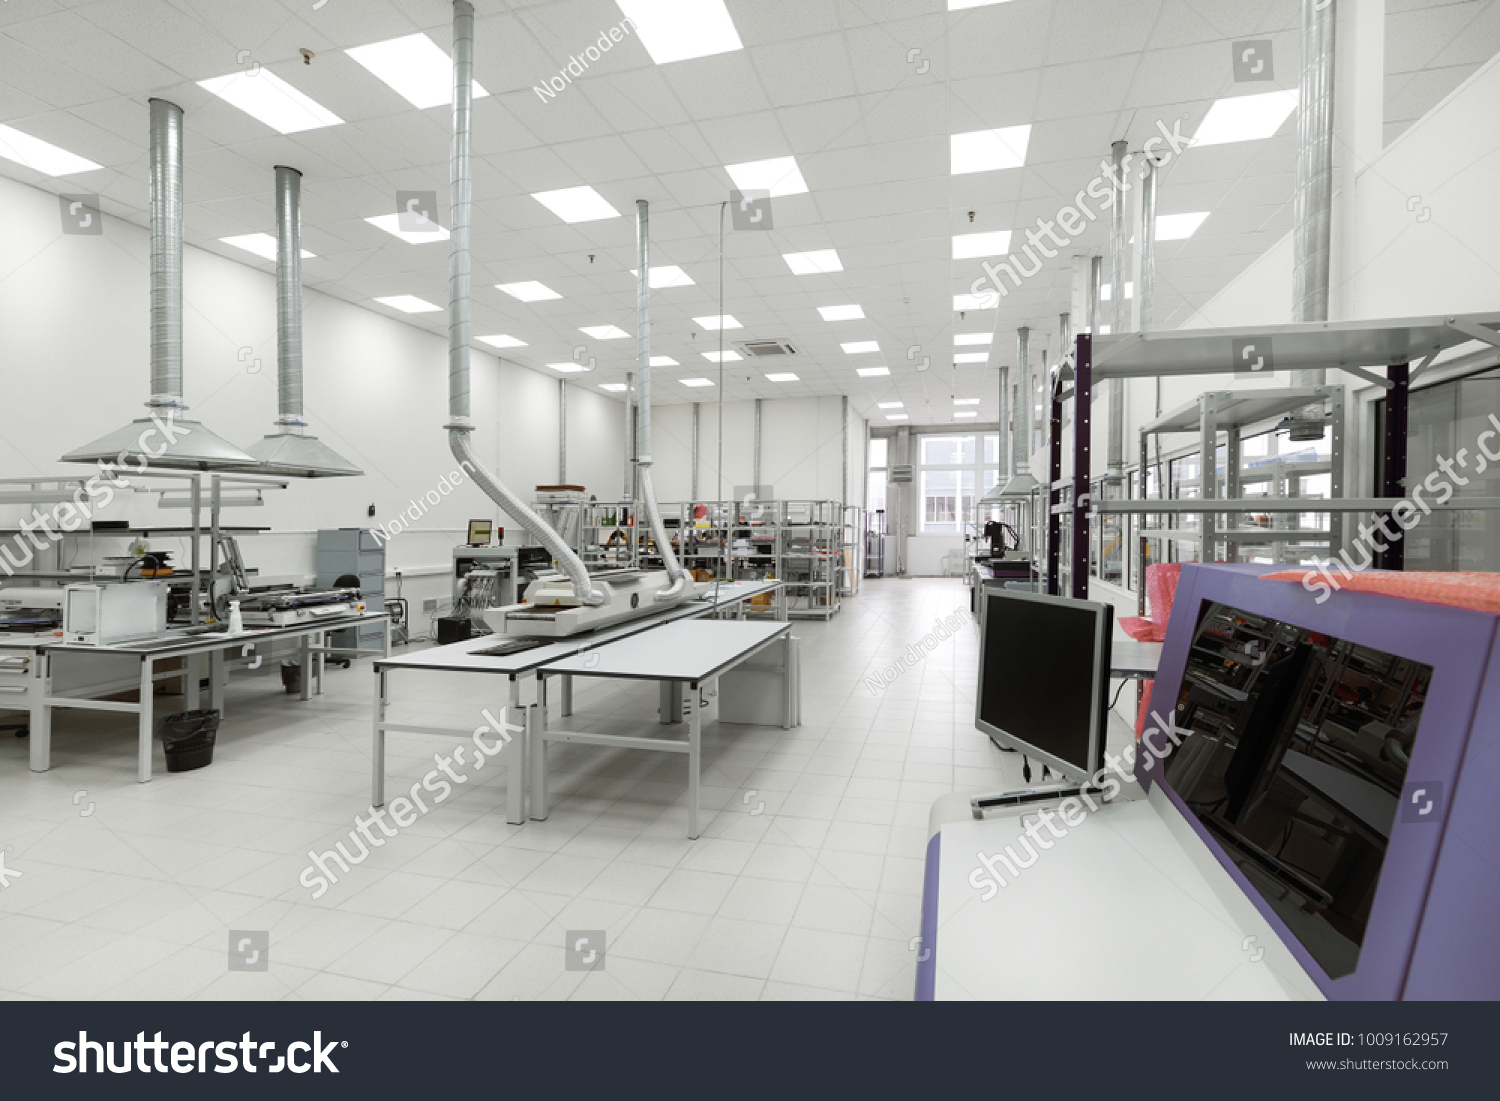 Factory Manufacture Electronic Printed Circuit Boards Stock Photo Board Fabrication And Assembly For The Of Workshop Surface Mounting Pre